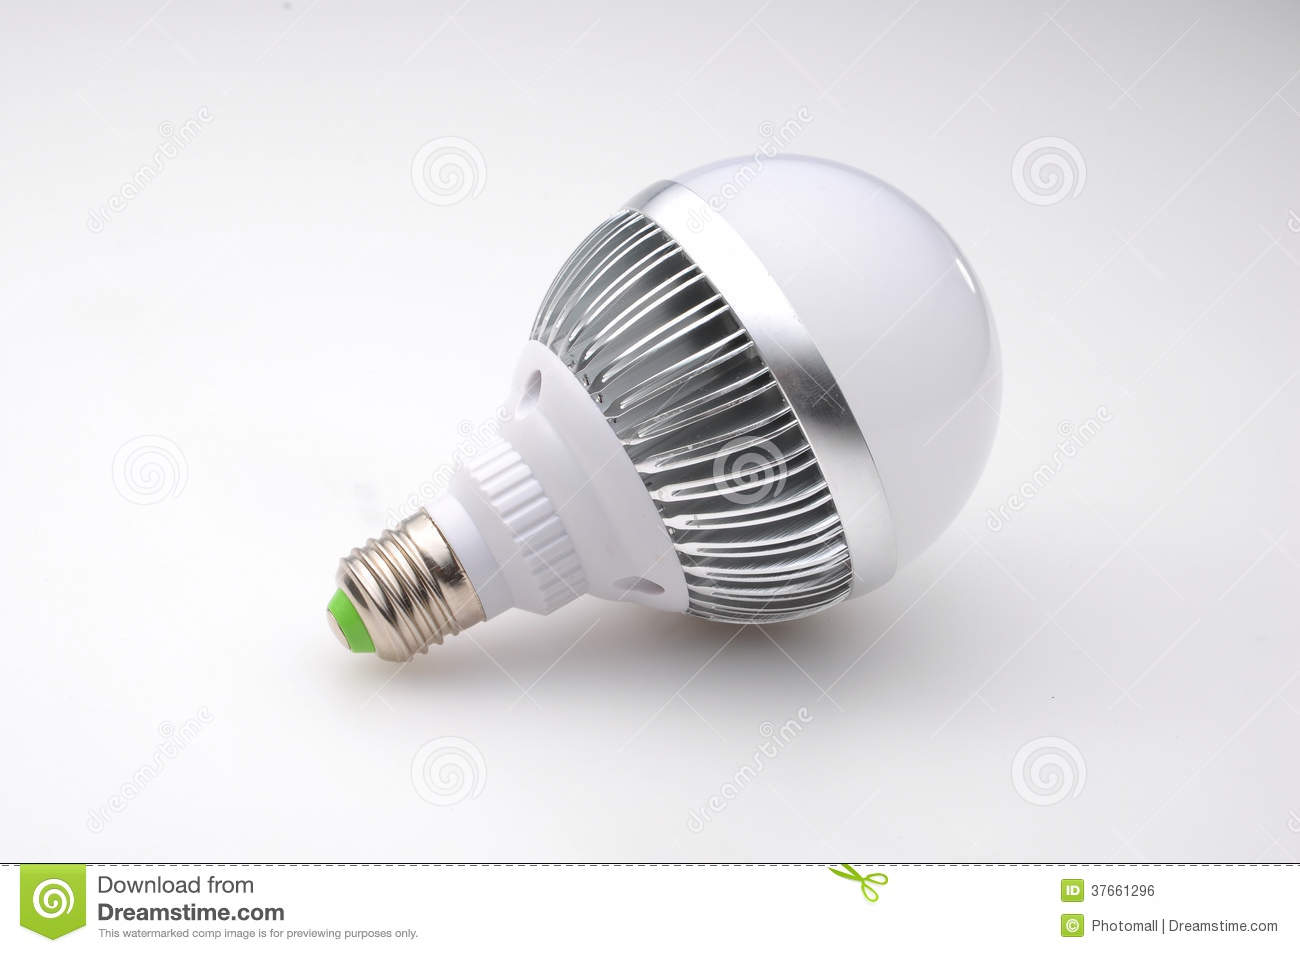 New Type Of Led Lamp Bulb Led Bulb Lamp Bulb Light Bulb Led Light Led Lamp Led Lighting New